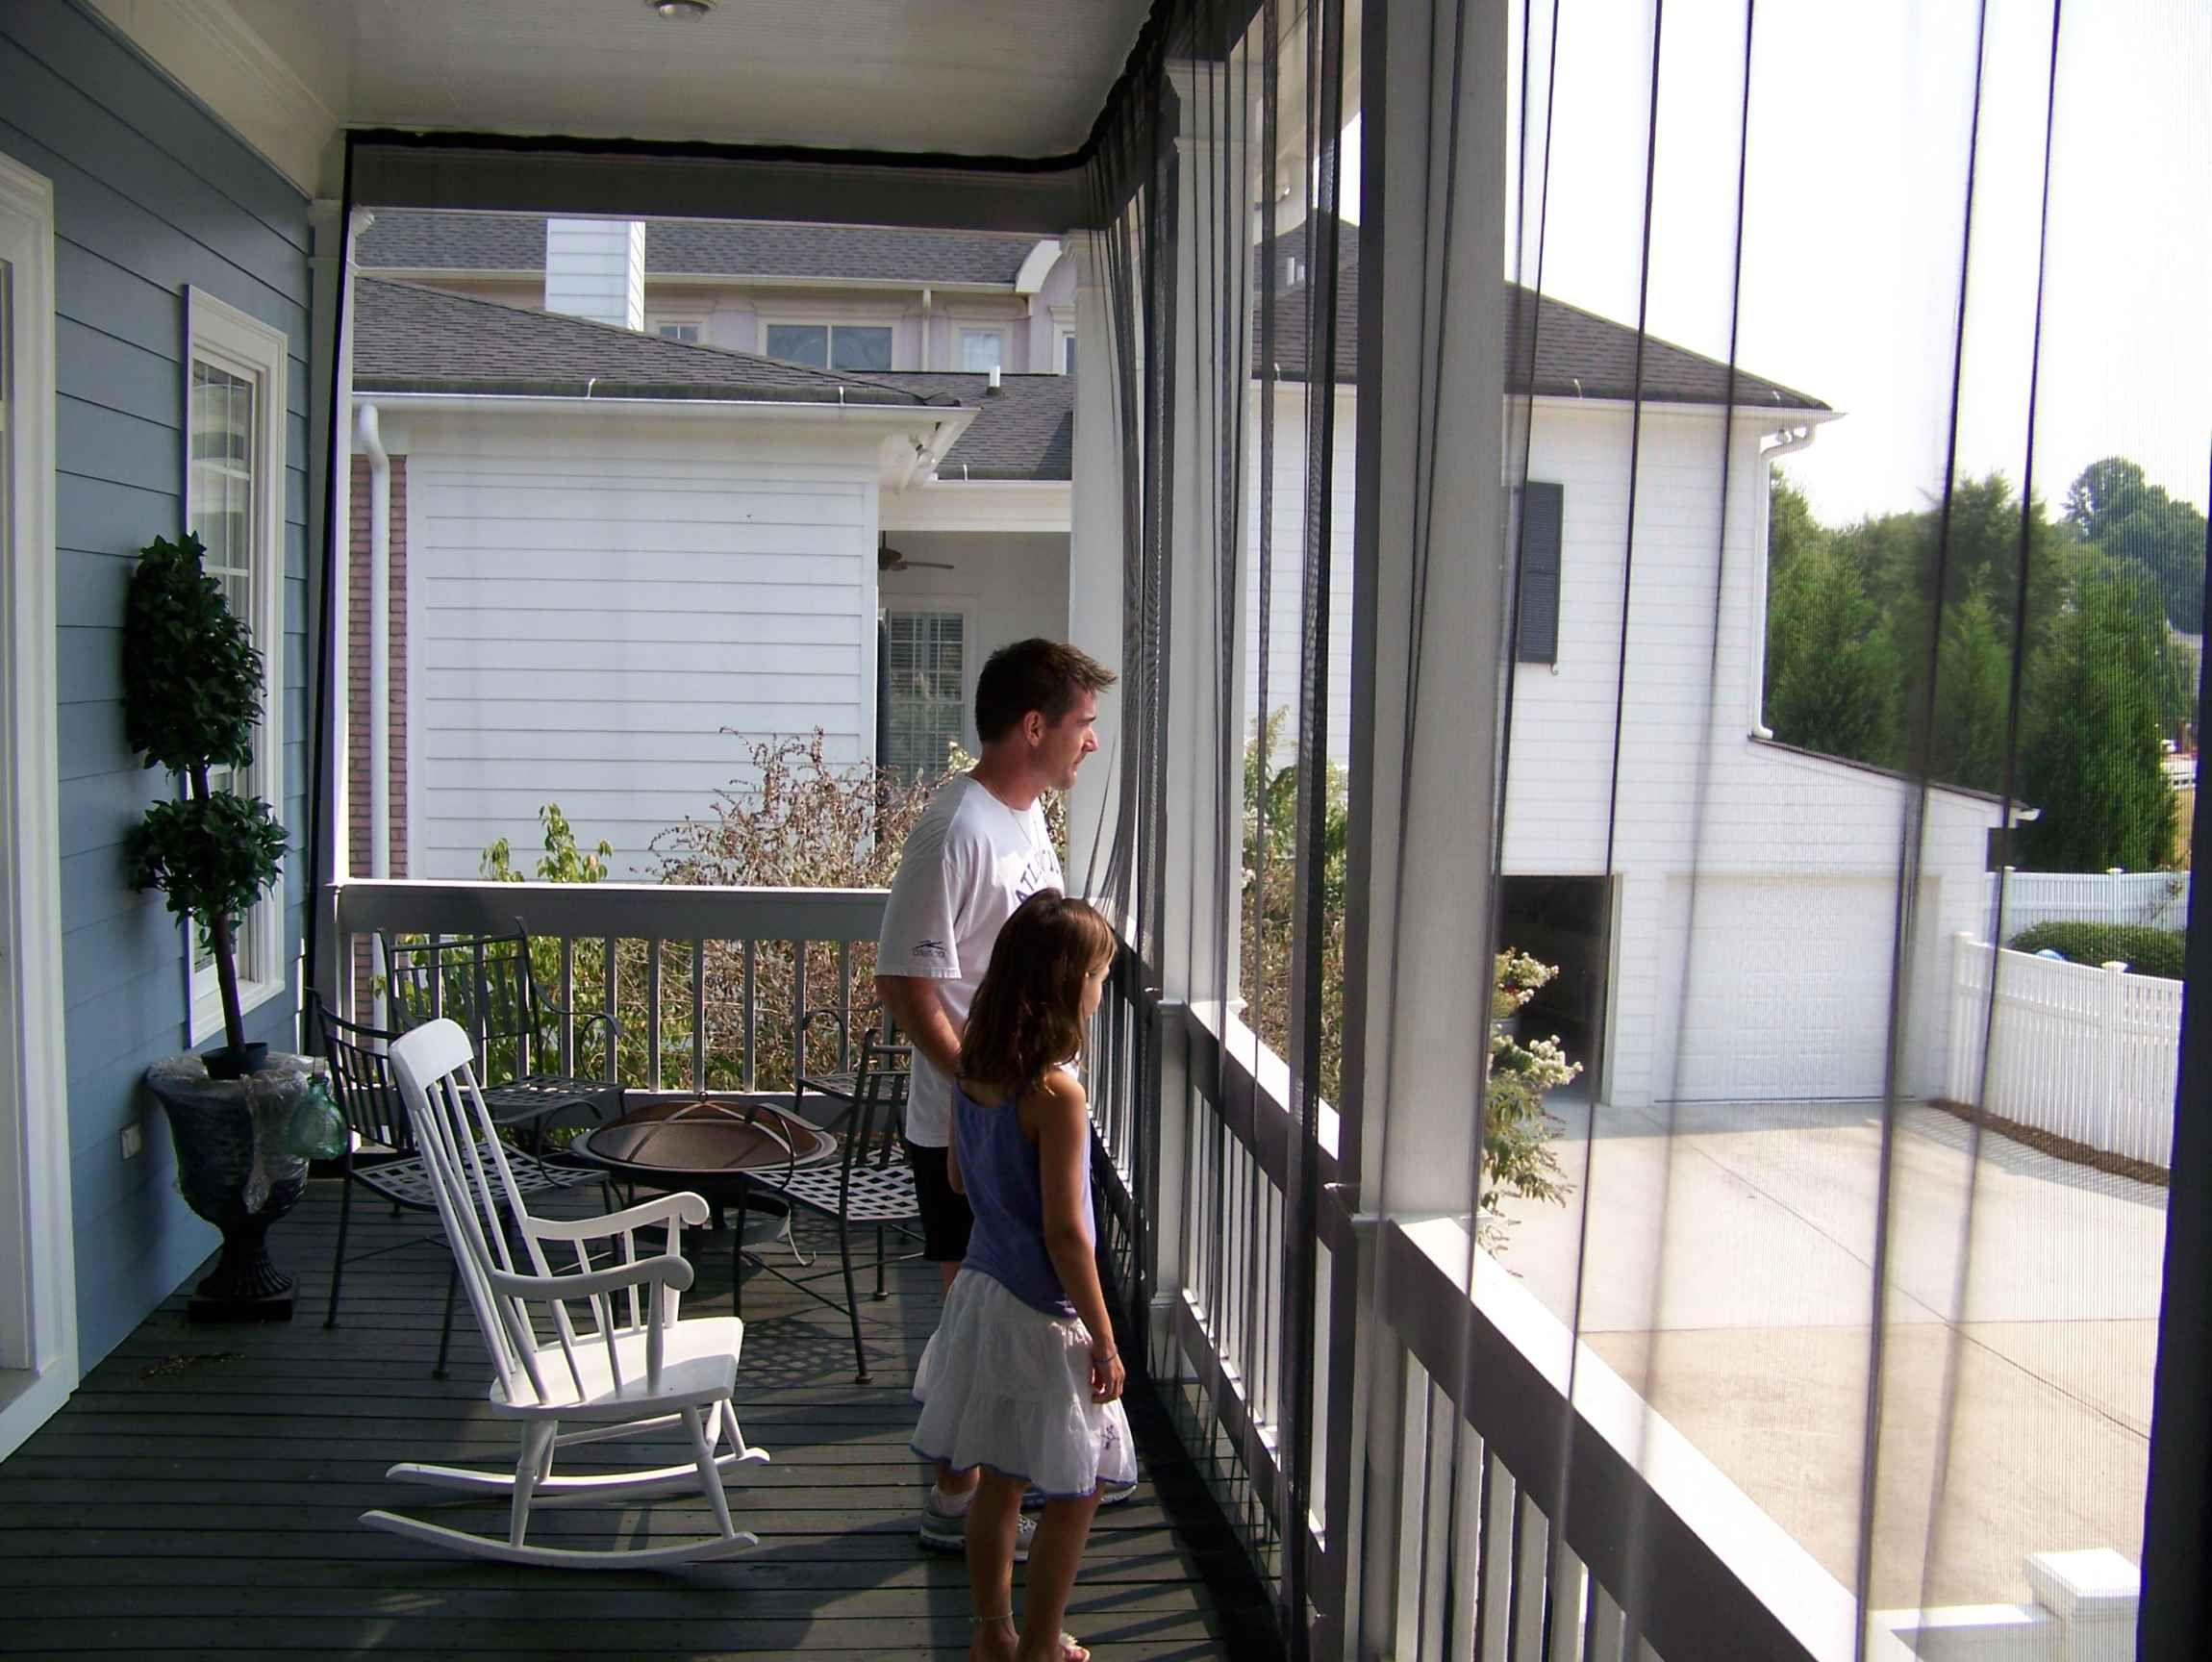 Mosquito Netting Mesh Curtains For The Balcony WANT